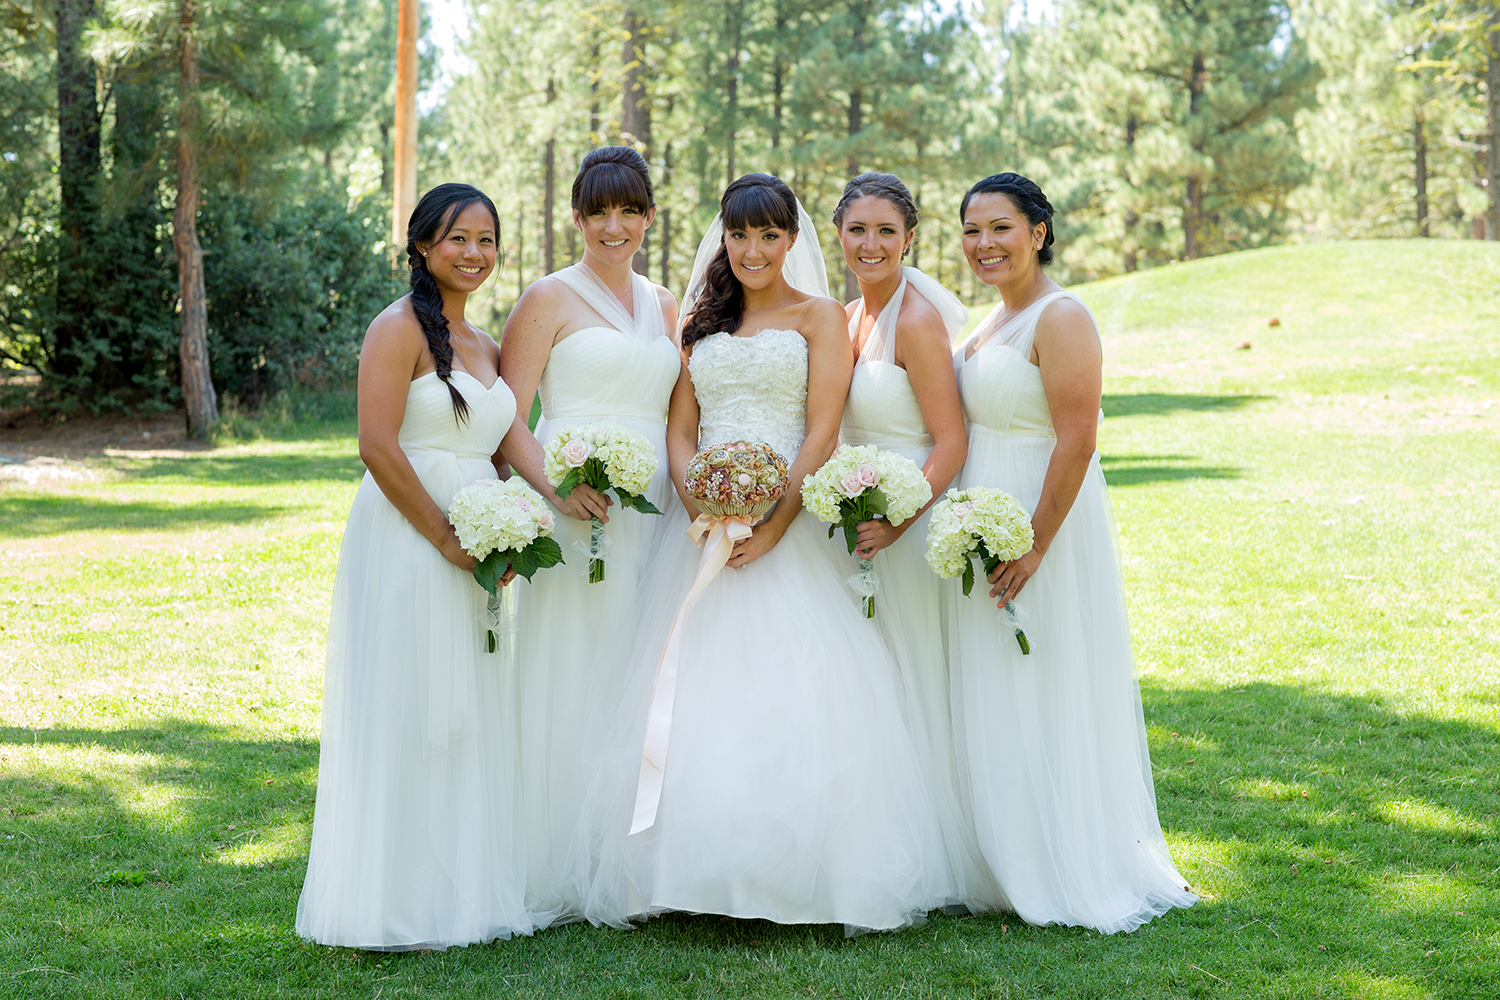 kevin-sawyer-photography-lake-tahoe-wedding-photographer-portola-grea-eagle-photography (6).JPG